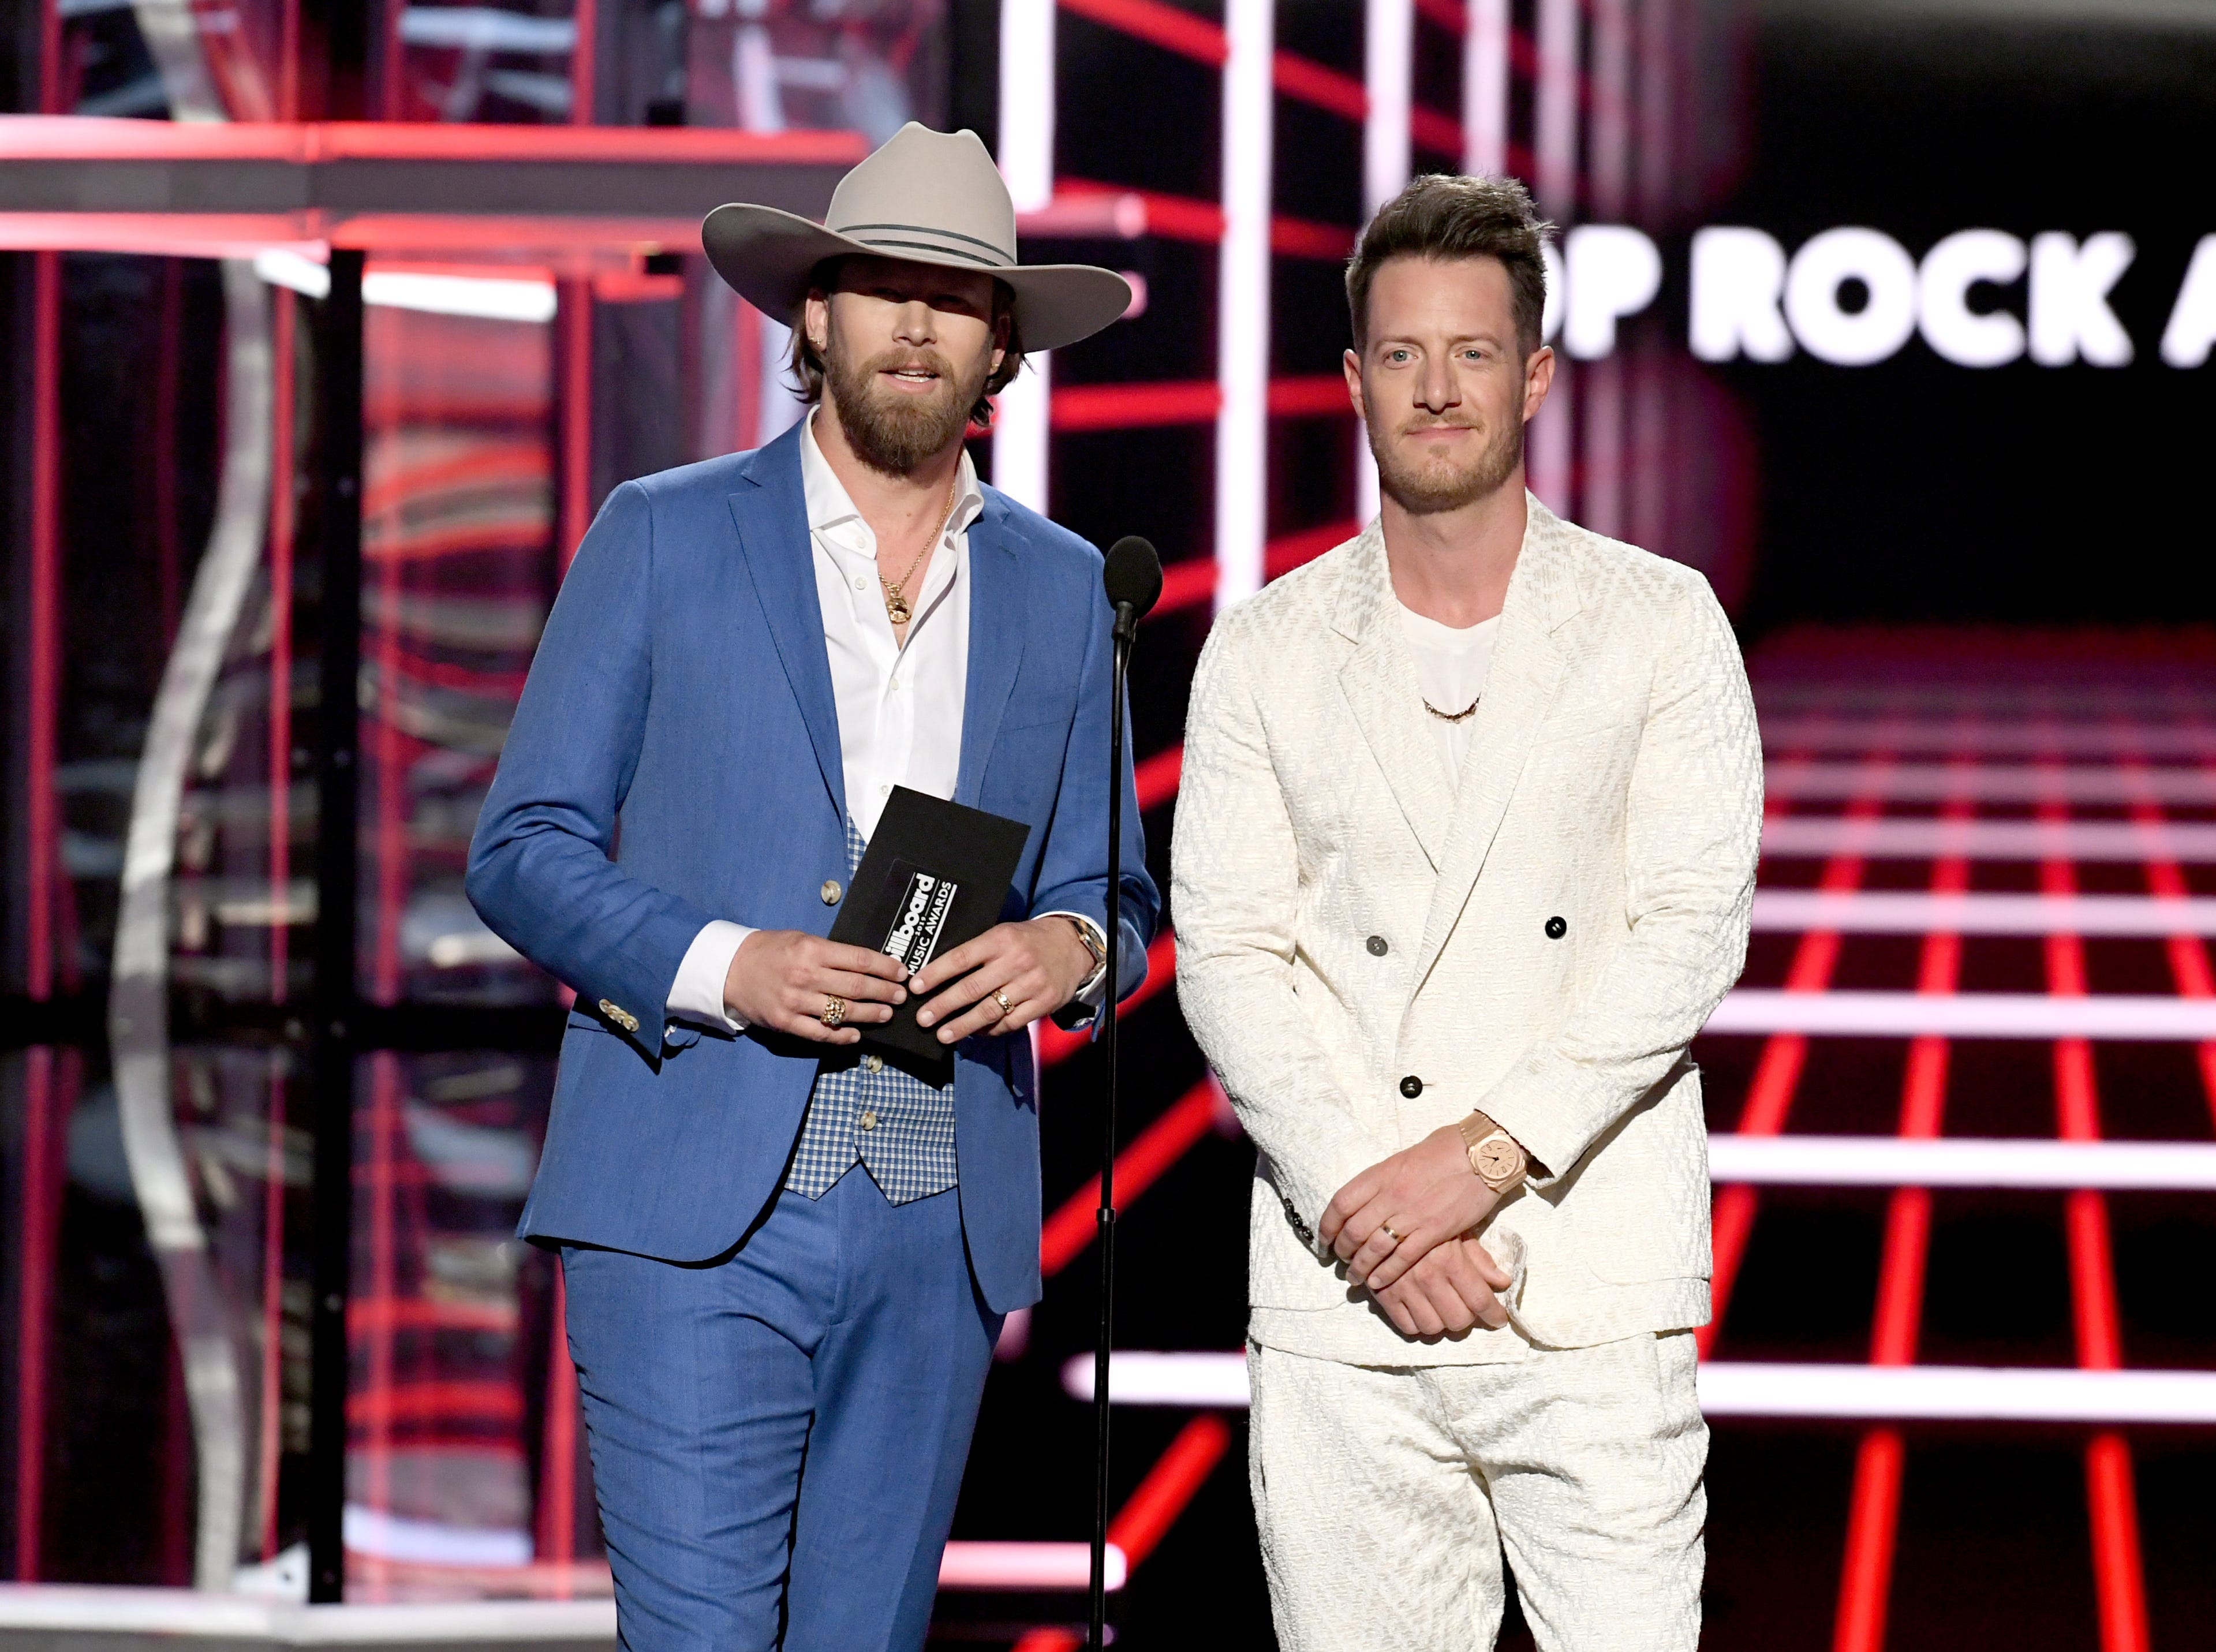 (L-R) Brian Kelley and Tyler Hubbard of Florida Georgia Line speak onstage during the 2019 Billboard Music Awards at MGM Grand Garden Arena on May 01, 2019 in Las Vegas, Nevada.